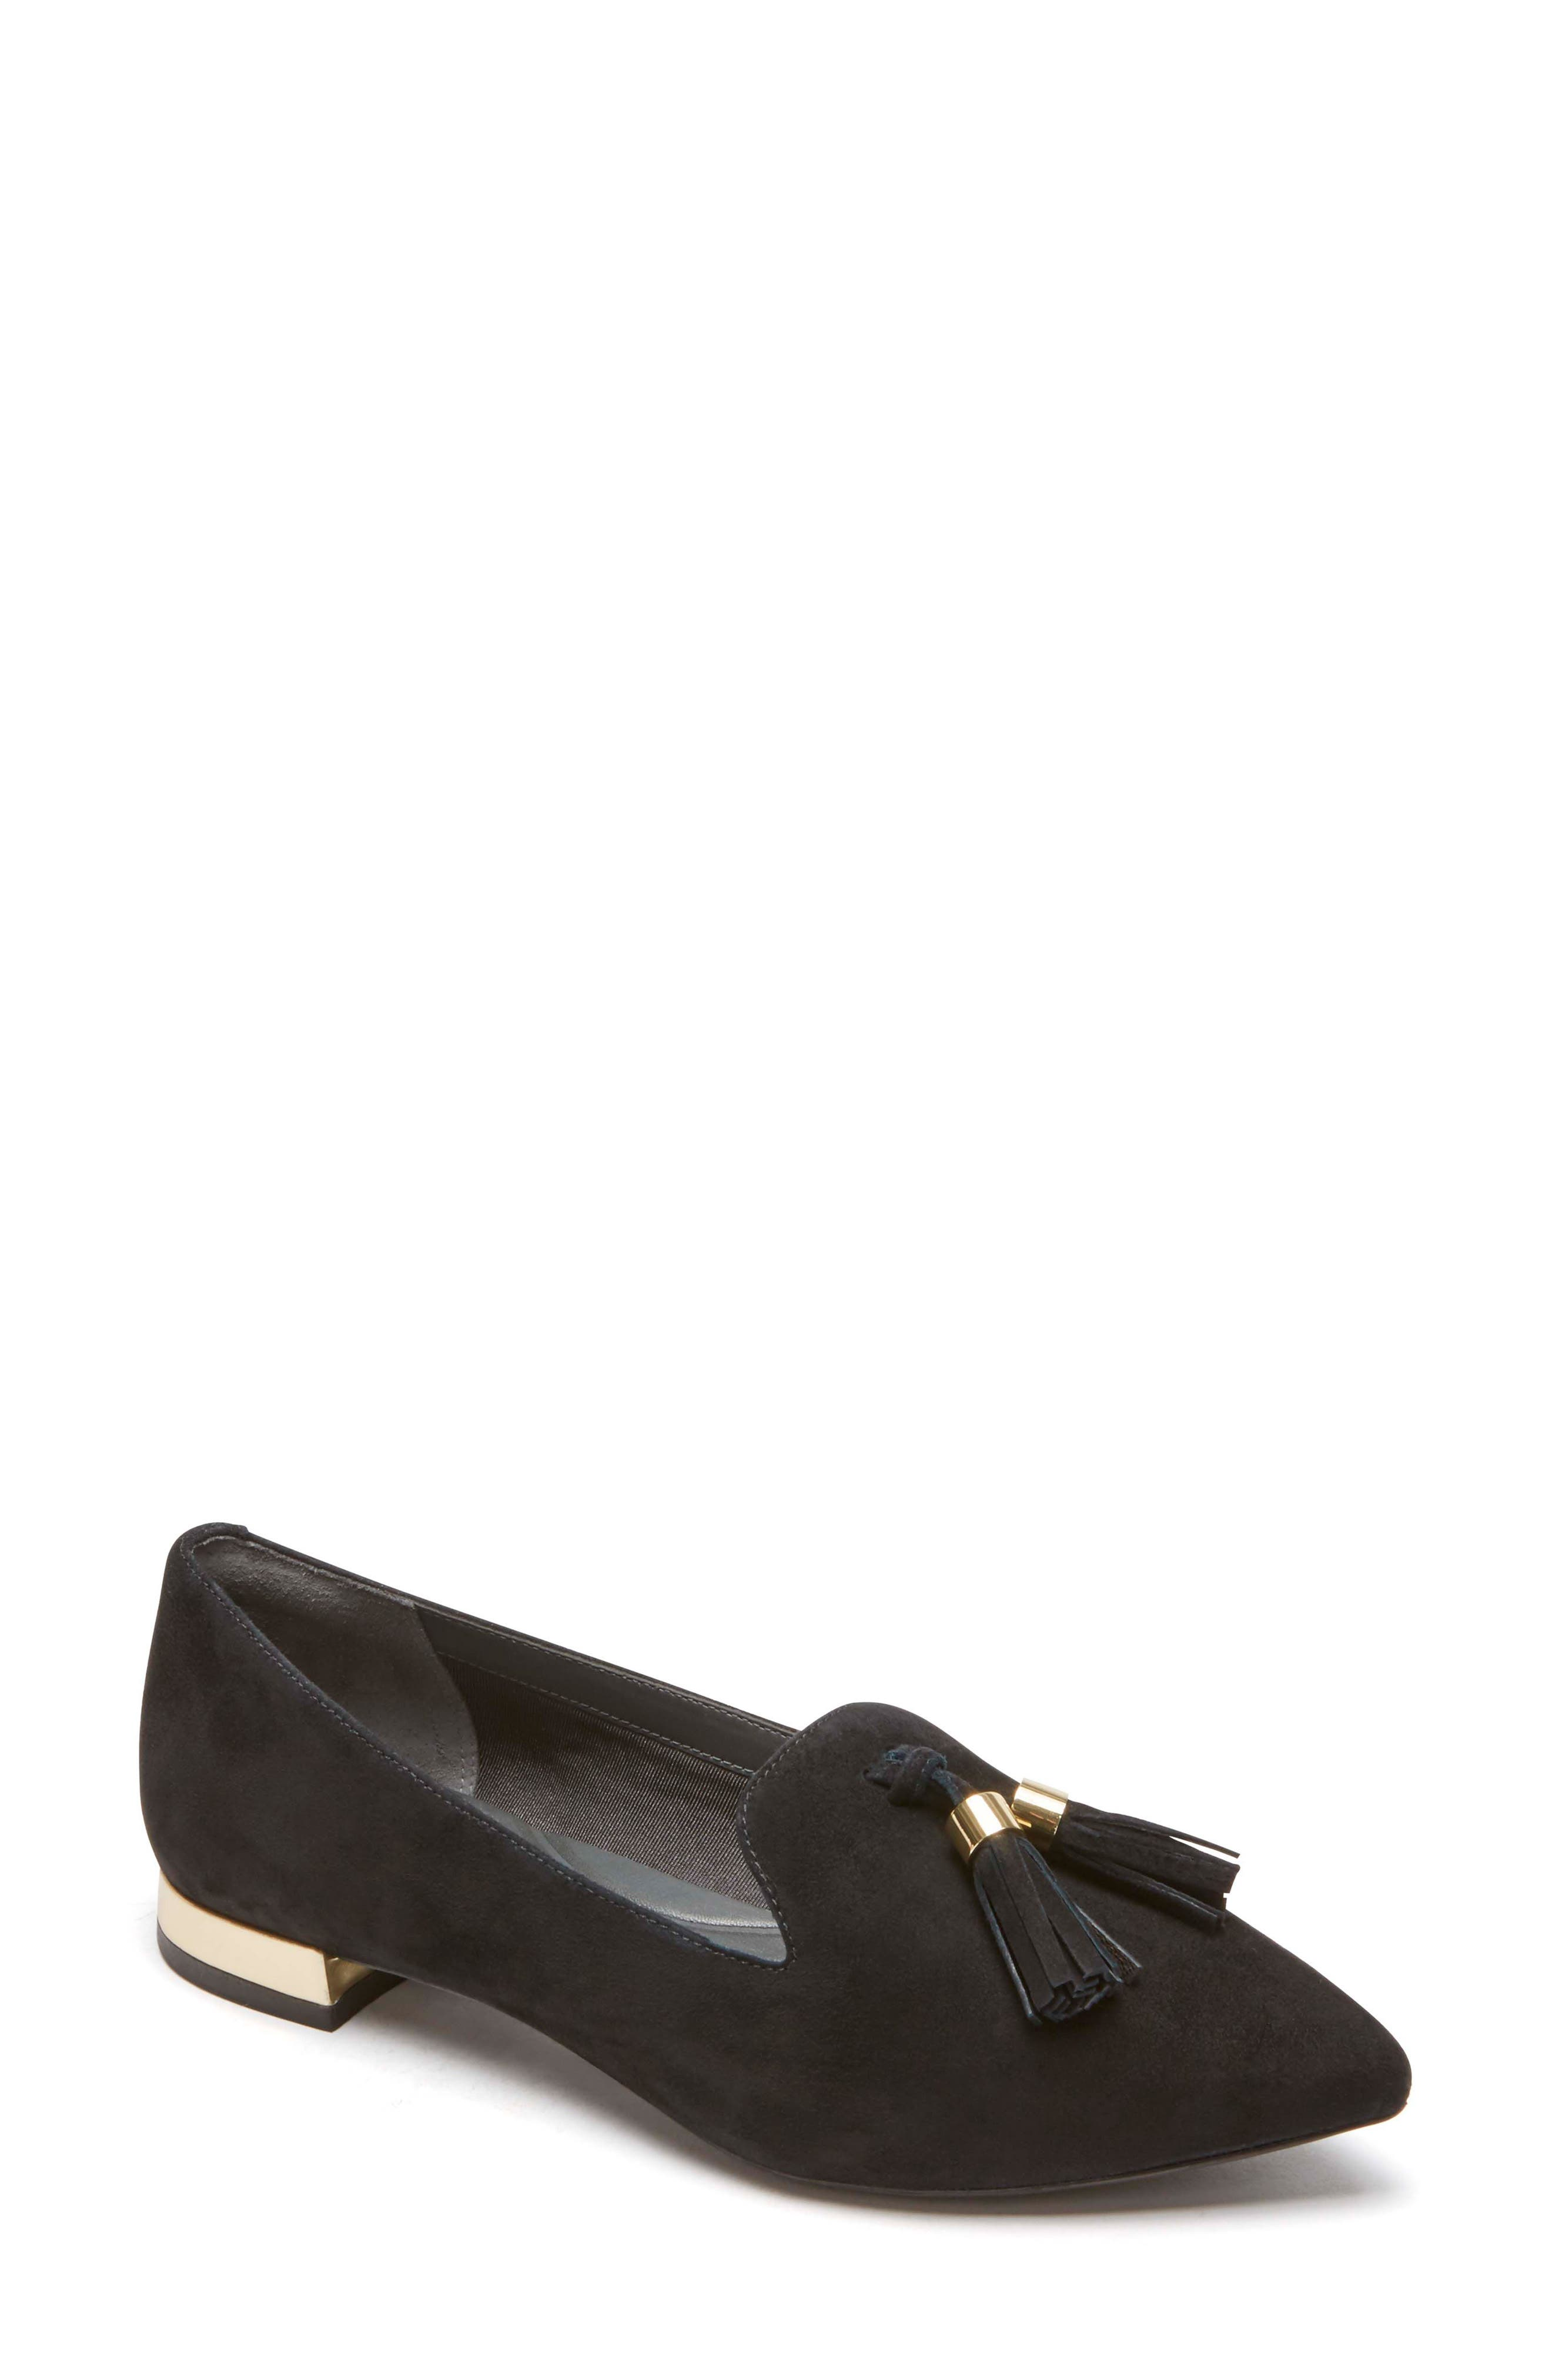 ROCKPORT, Total Motion Zuly Luxe Pointy Toe Loafer, Main thumbnail 1, color, BLACK SUEDE